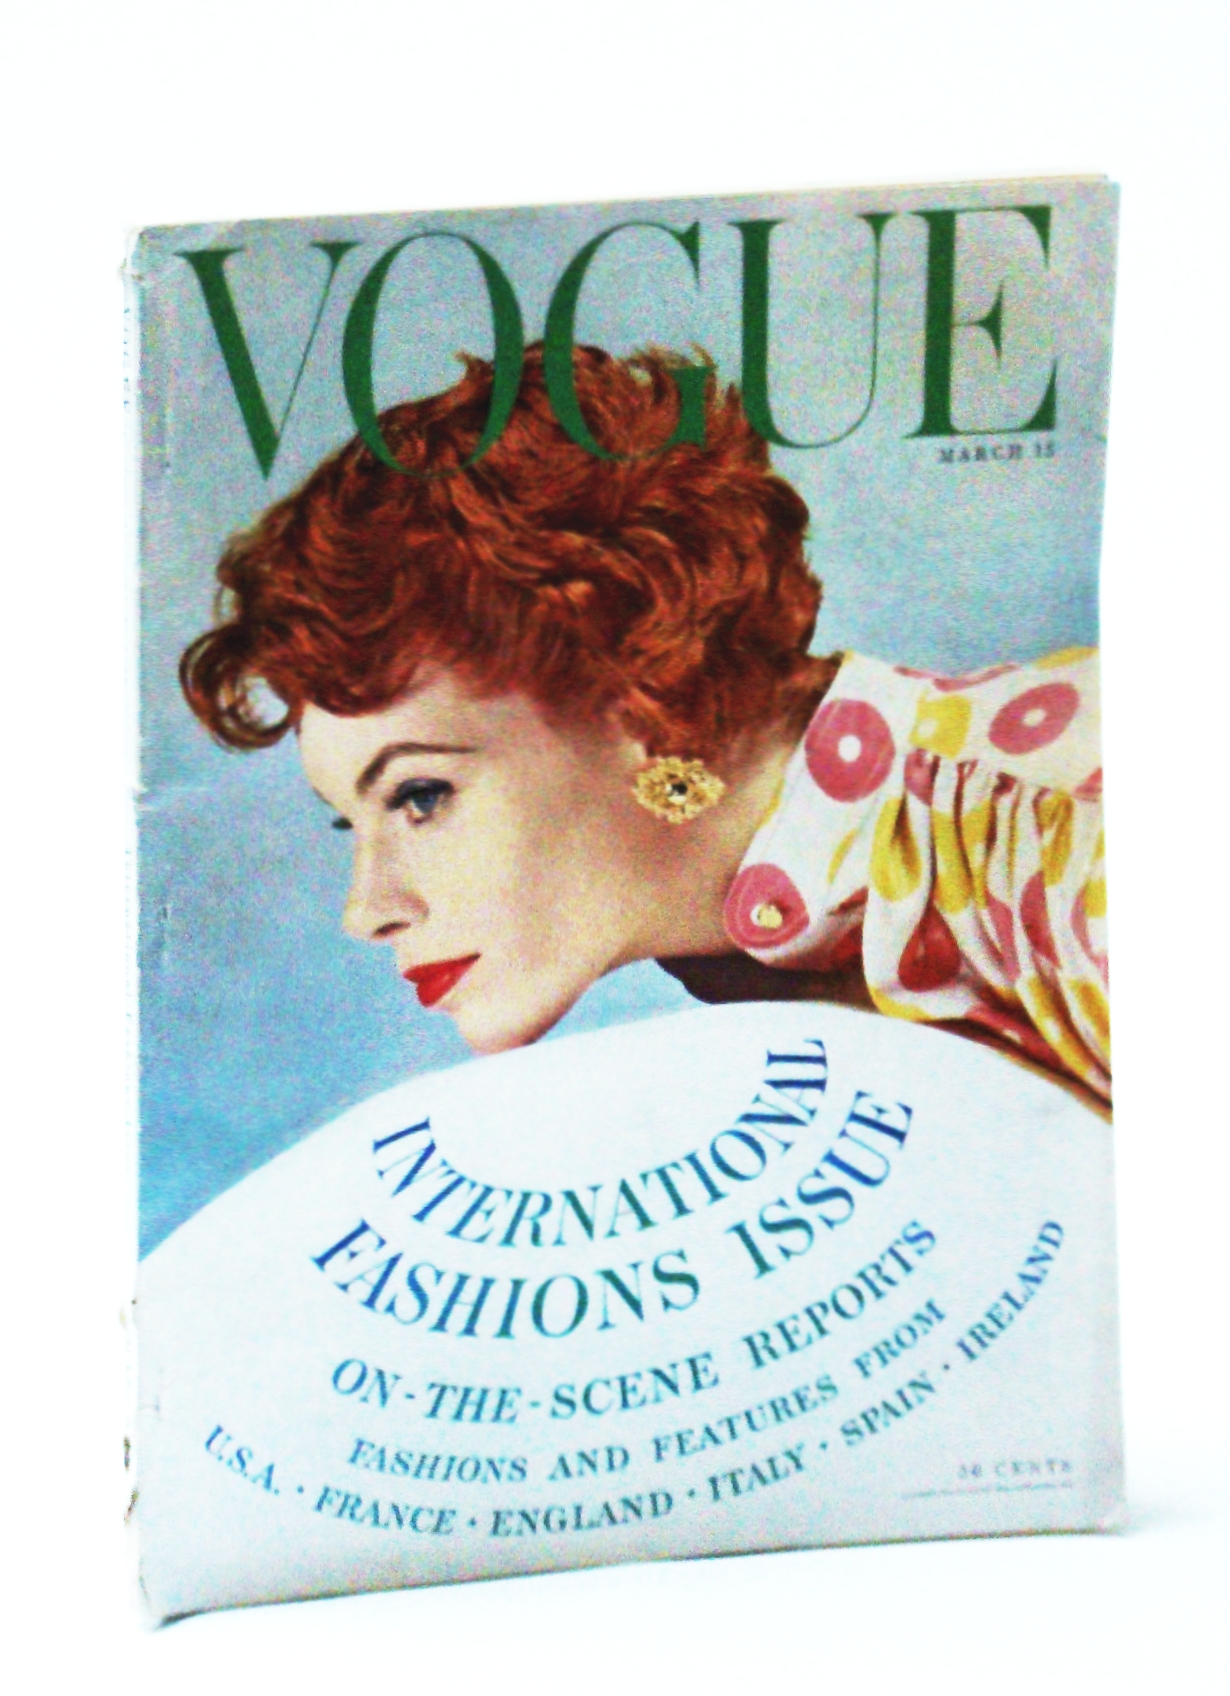 Image for Vogue (American) Magazine, March (Mar.) 15, 1954 - International Fashions Issue